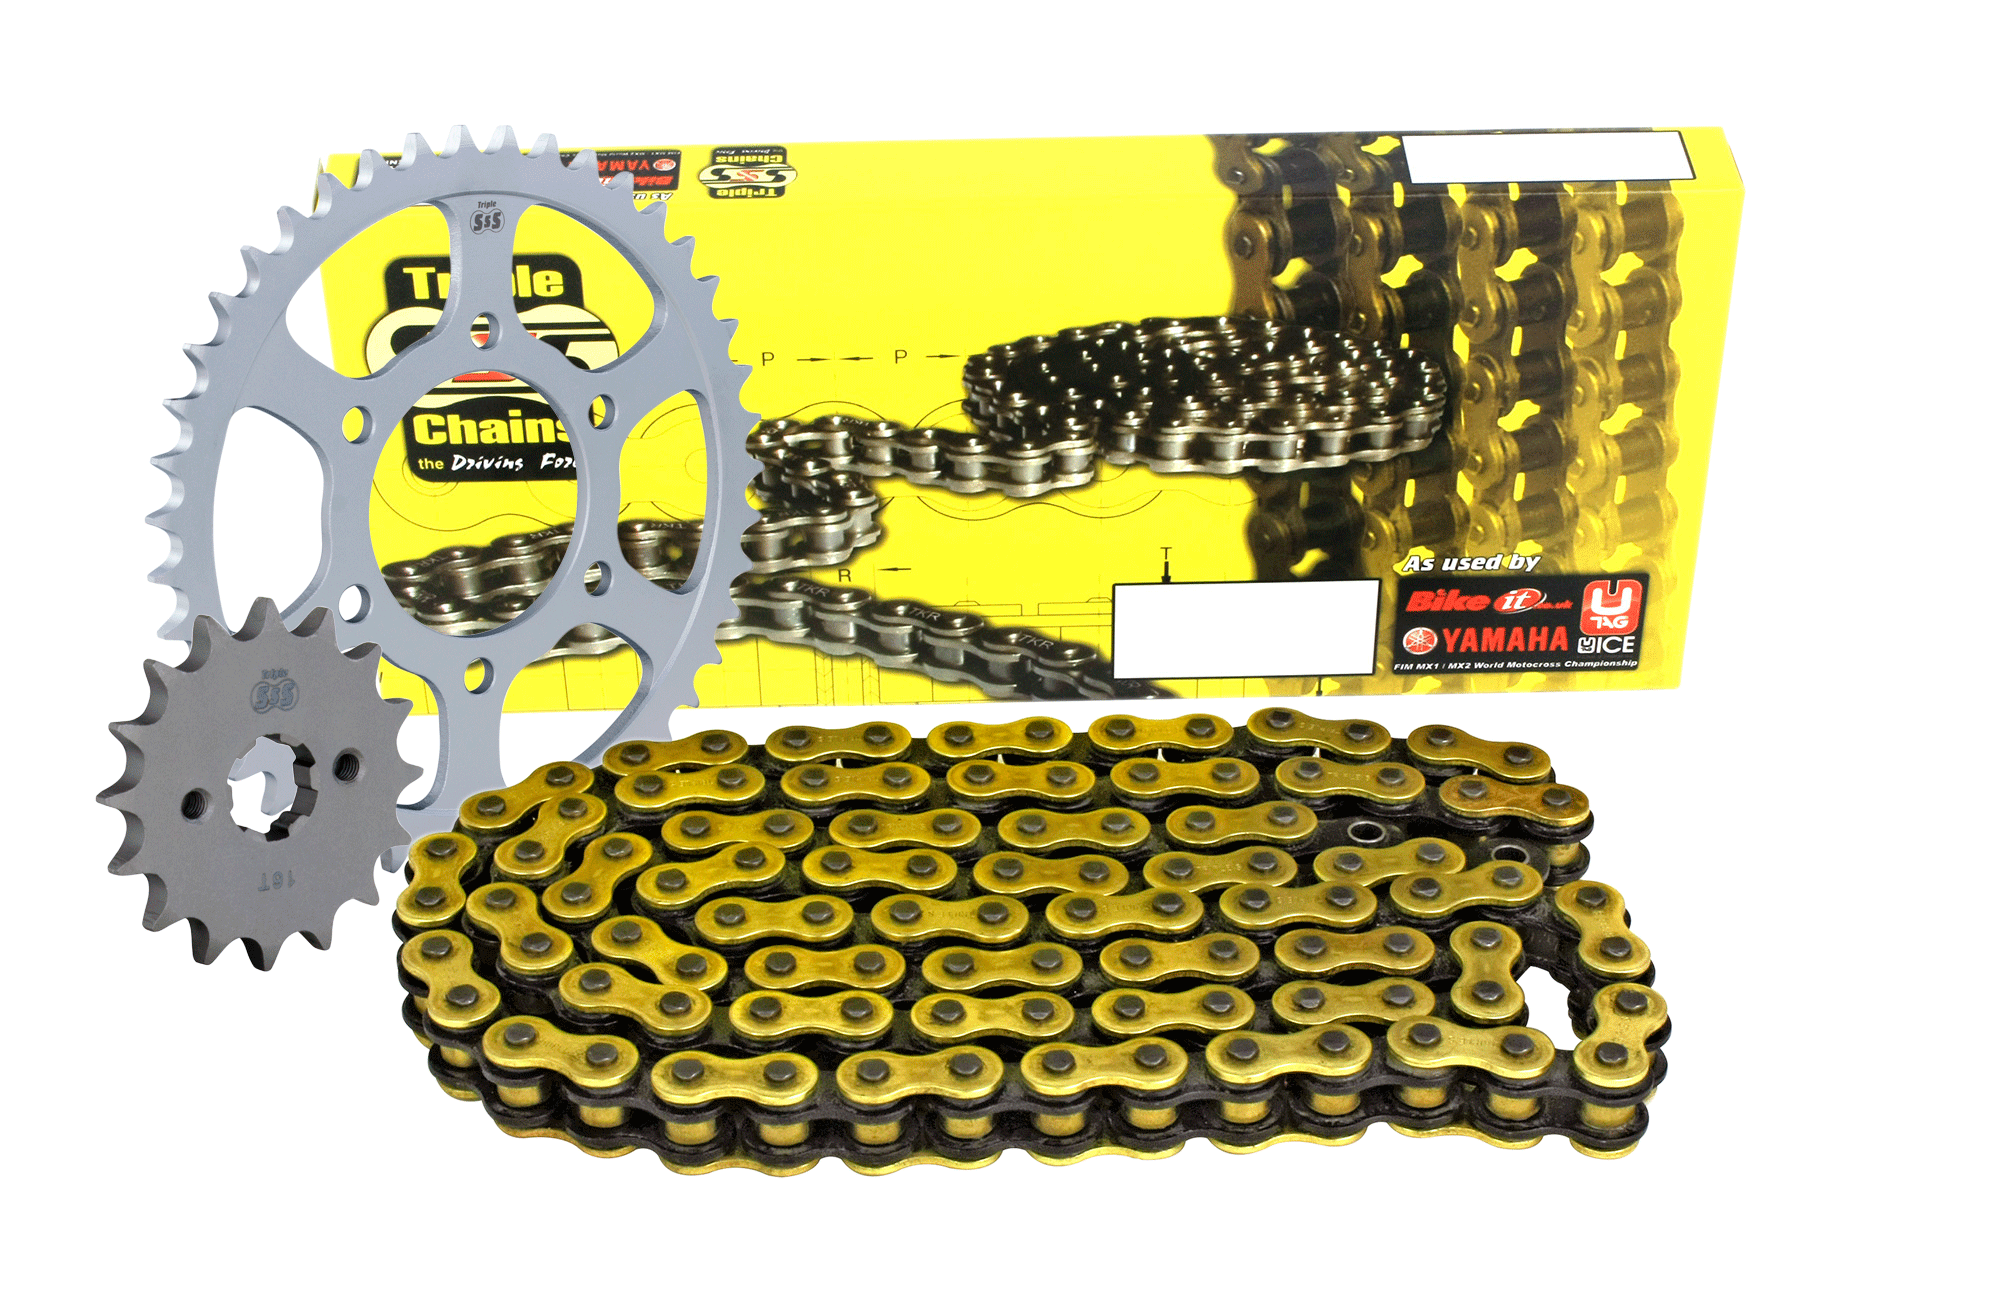 Honda CBR1100 XX-V/W/X/Y/1/2/3/4/5/6/7 Blackbird 97-07 Chain & Sprocket Kit